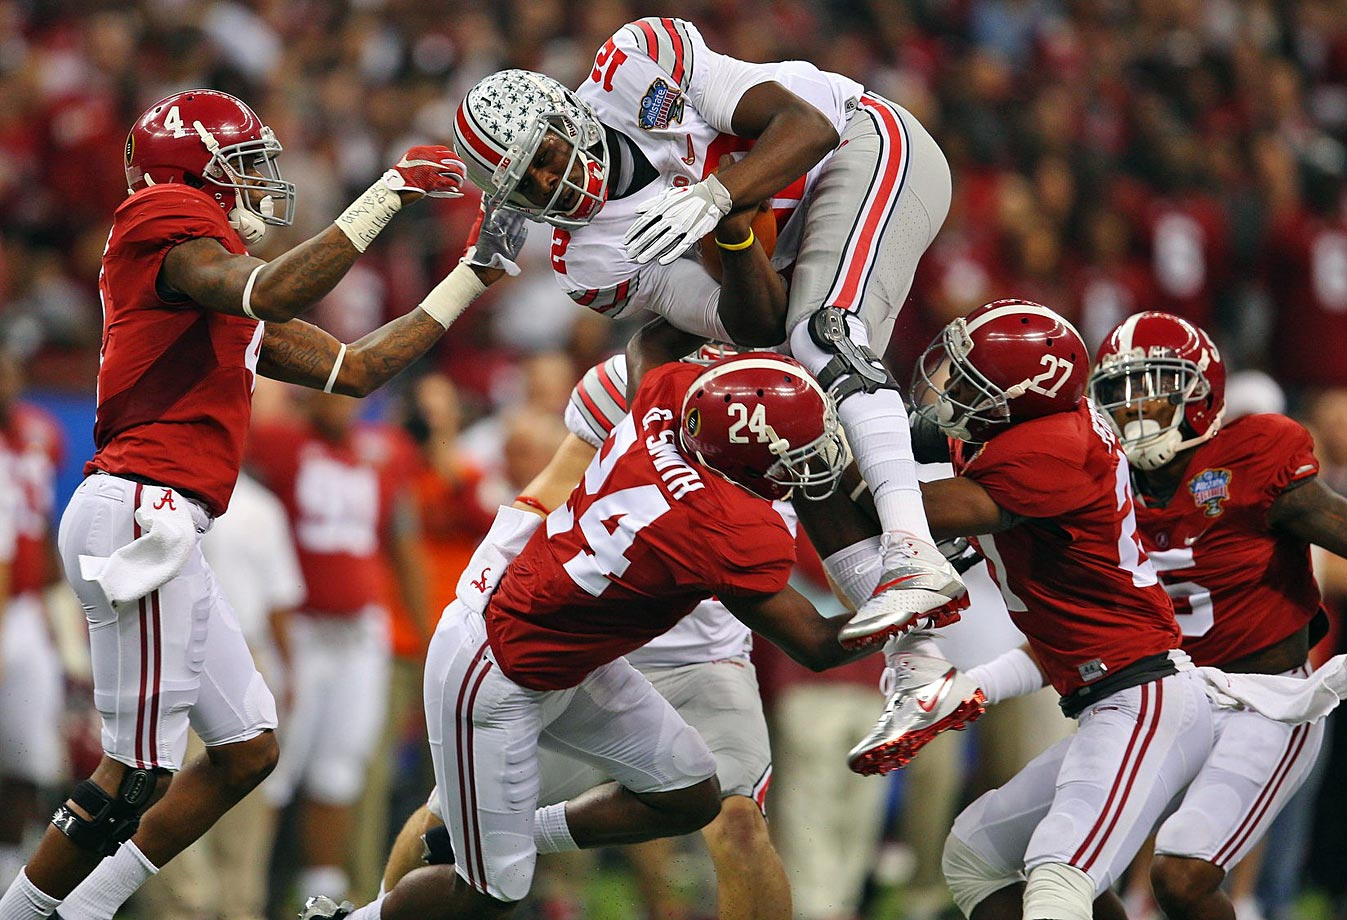 Jones also ran for 43 yards and converted a crucial third-down play with a spinning, 1-yard dive and Ohio State clinging to a 34-28 lead.